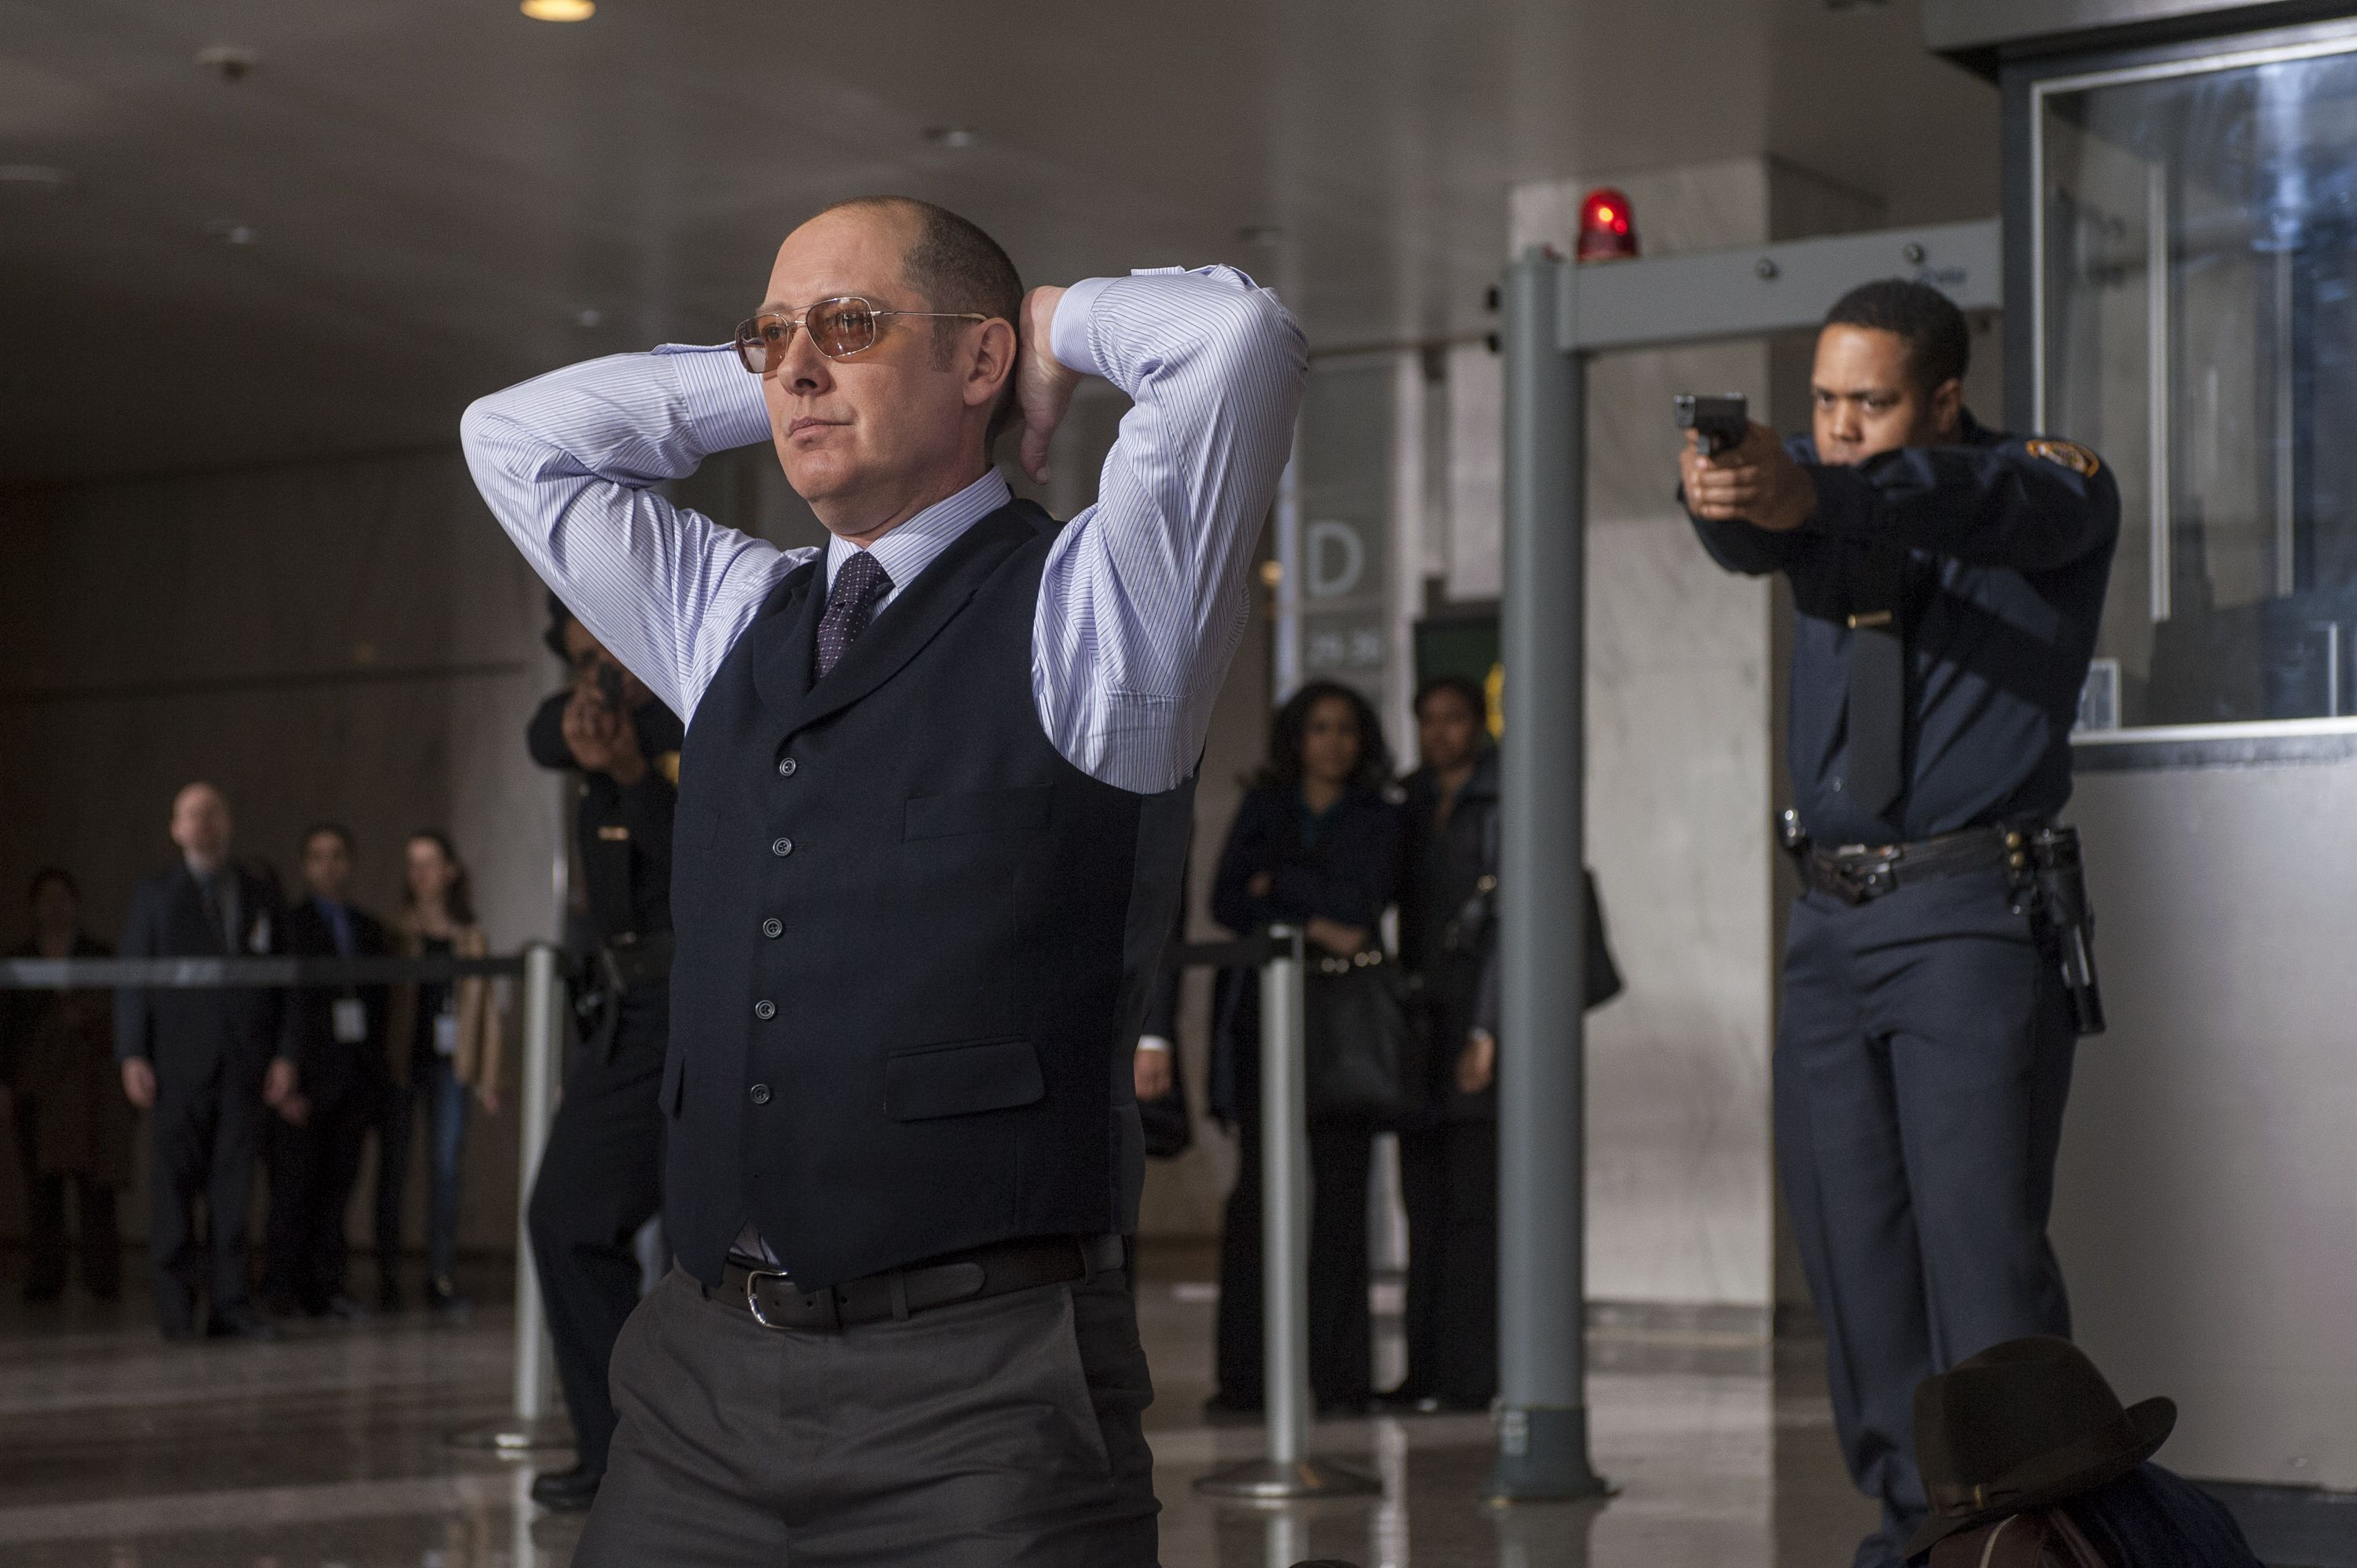 Red Reddington es un villano como pocos